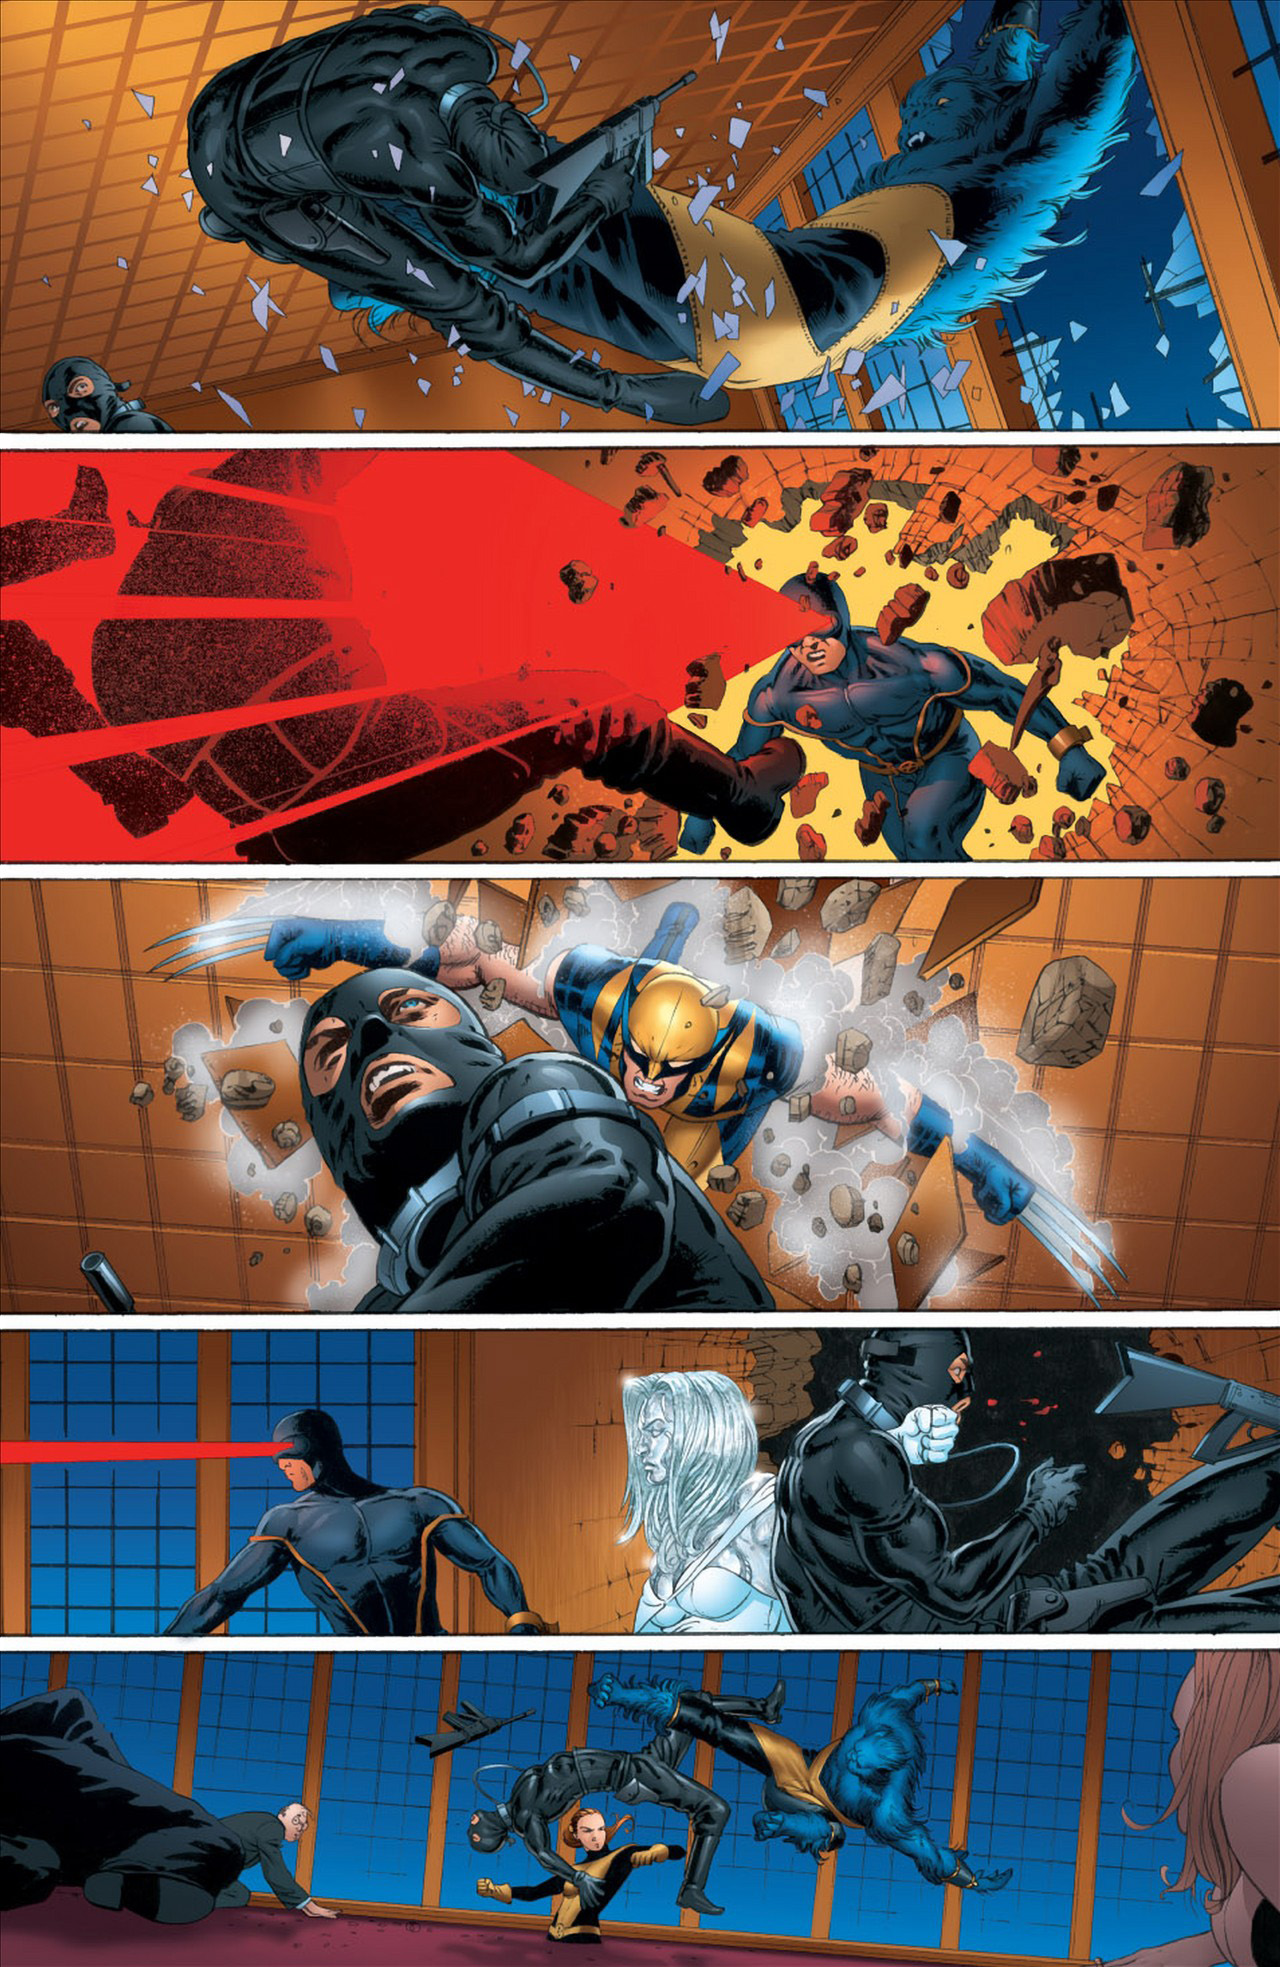 The Astonishing X-Men Deals With A Hostage Situation